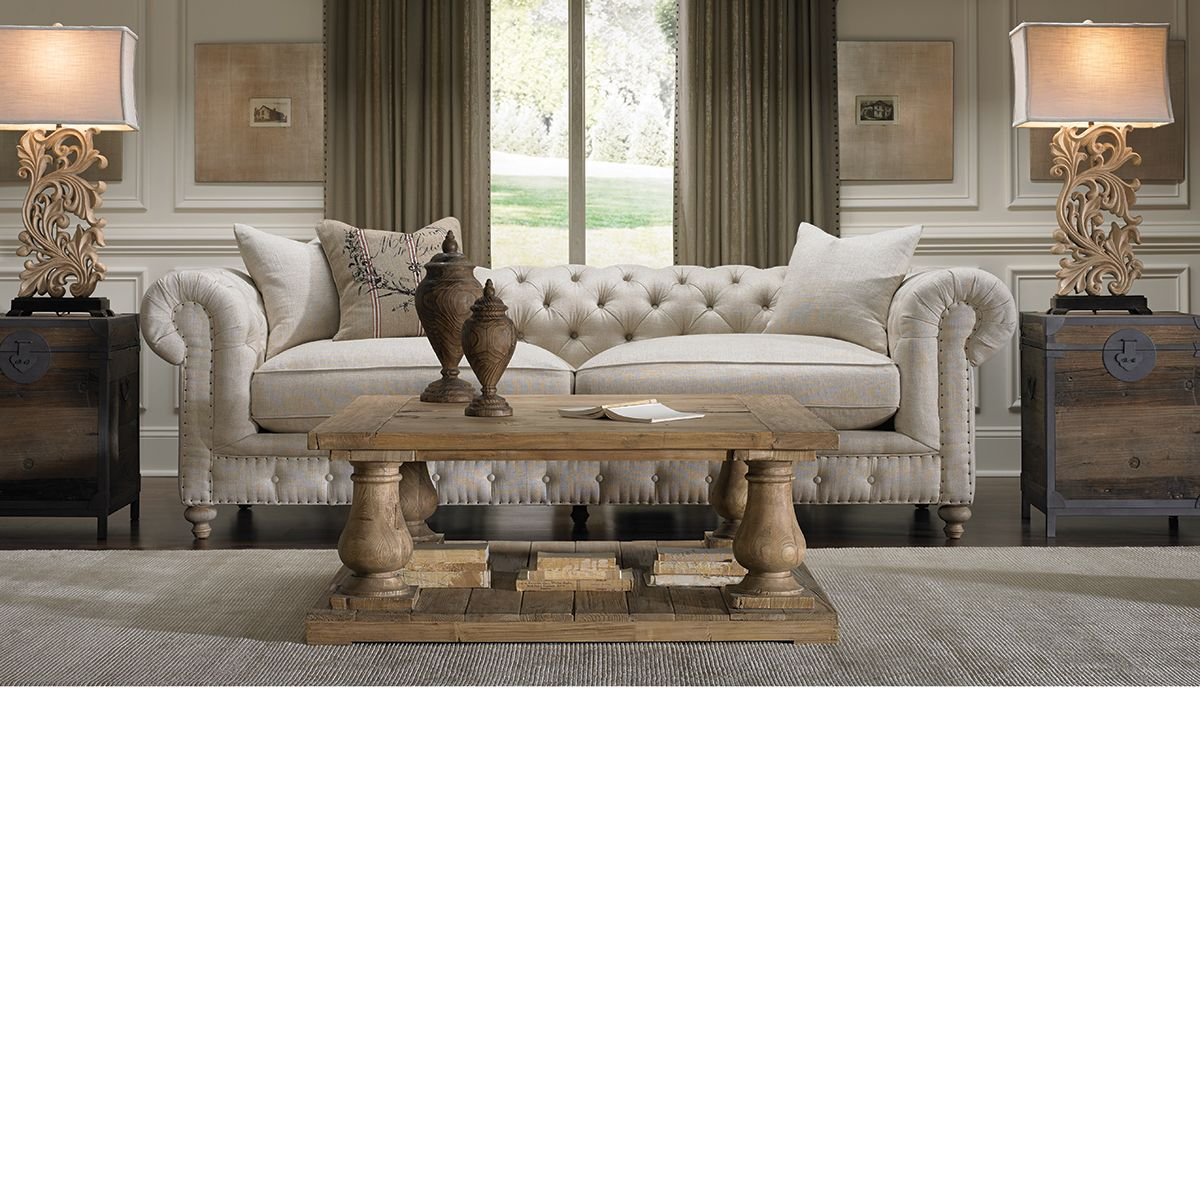 THE ICONIC CHESTERFIELD SOFA